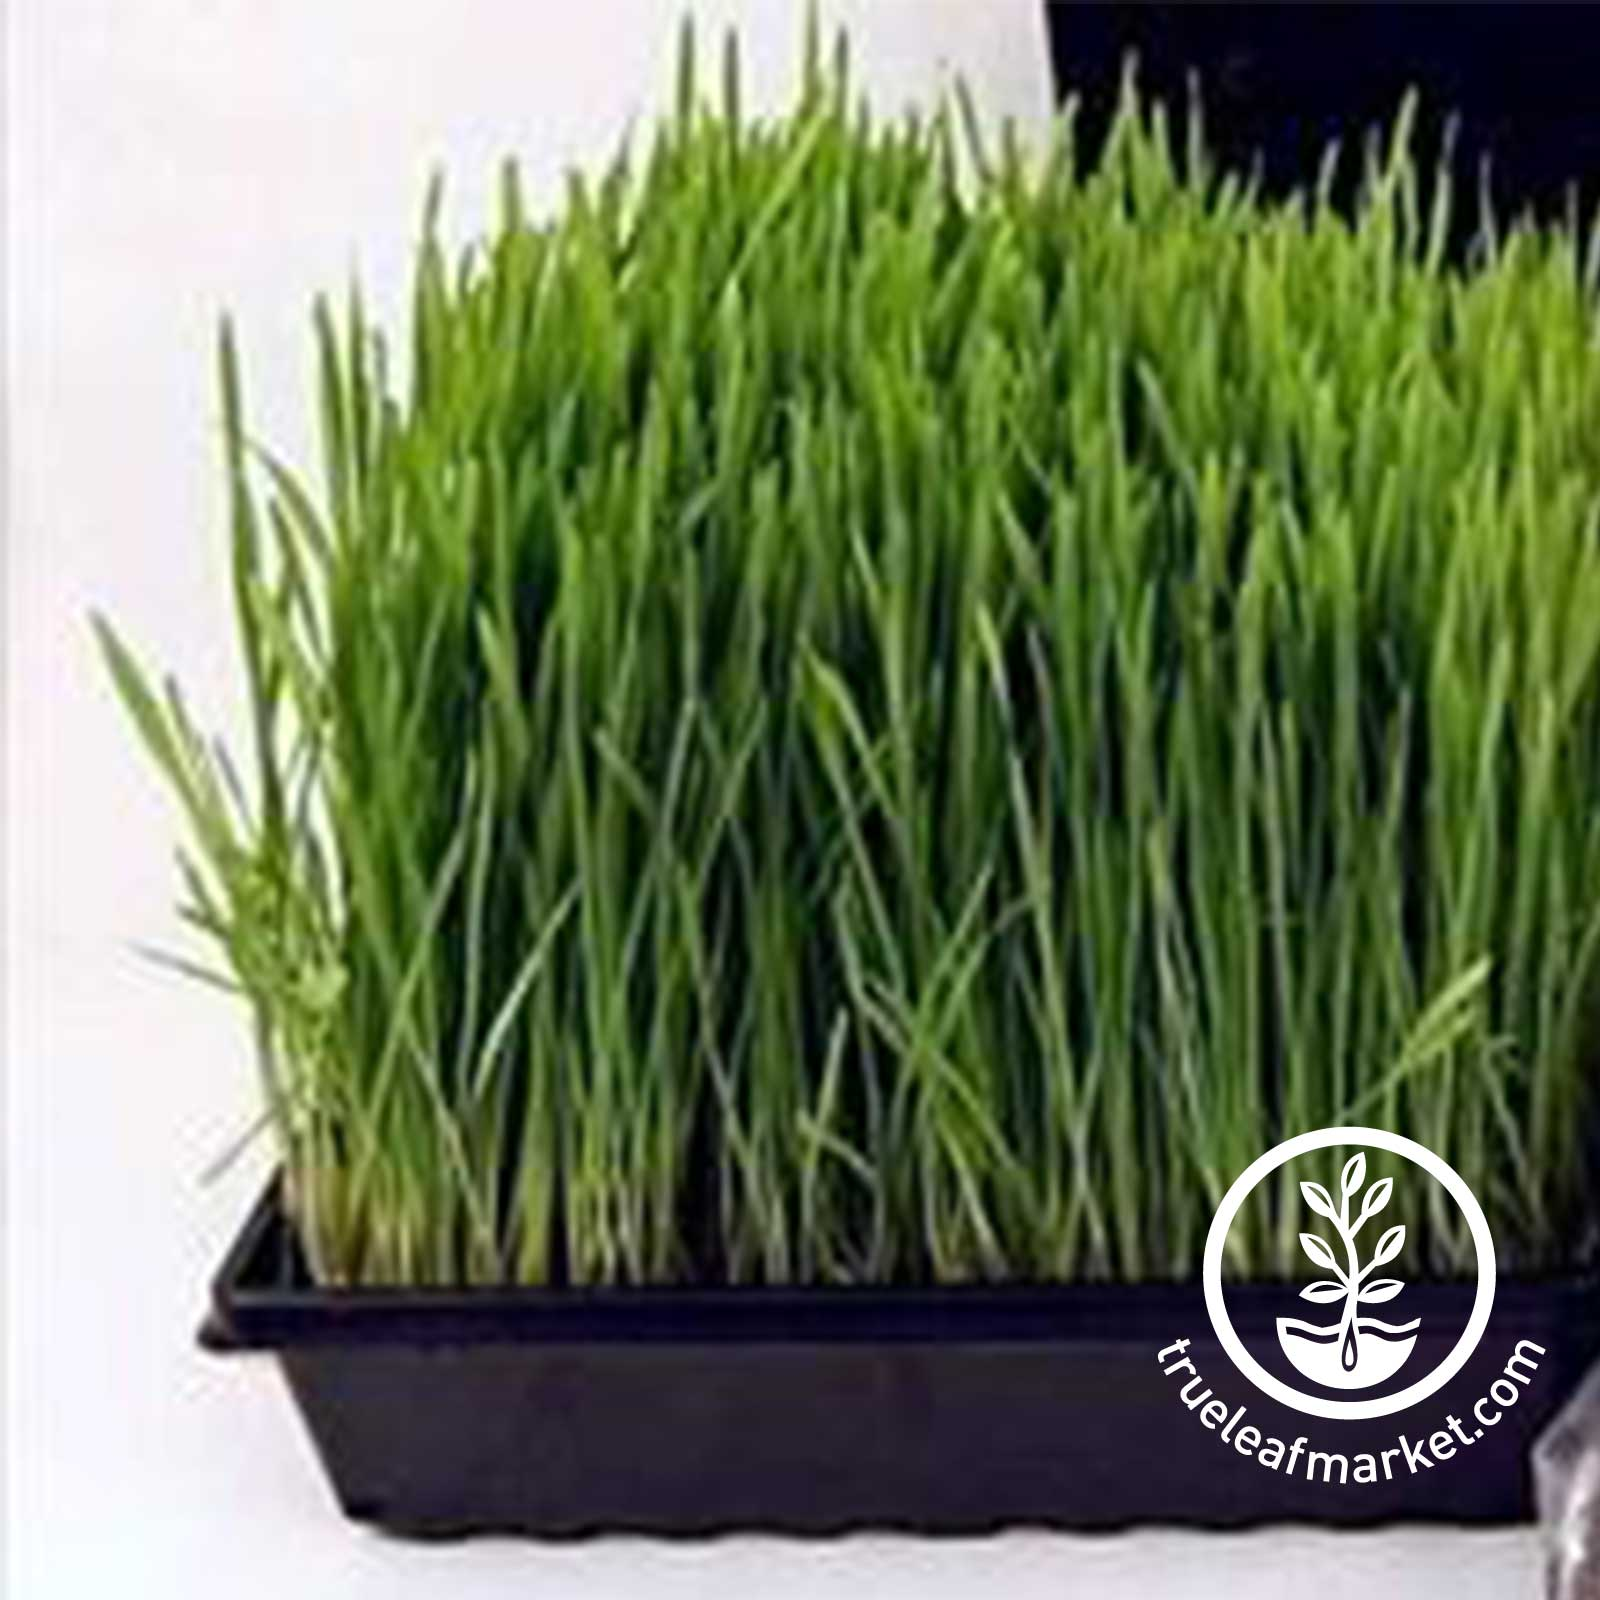 Small Plant Grow Tray with Wheatgrass / Pet Grass